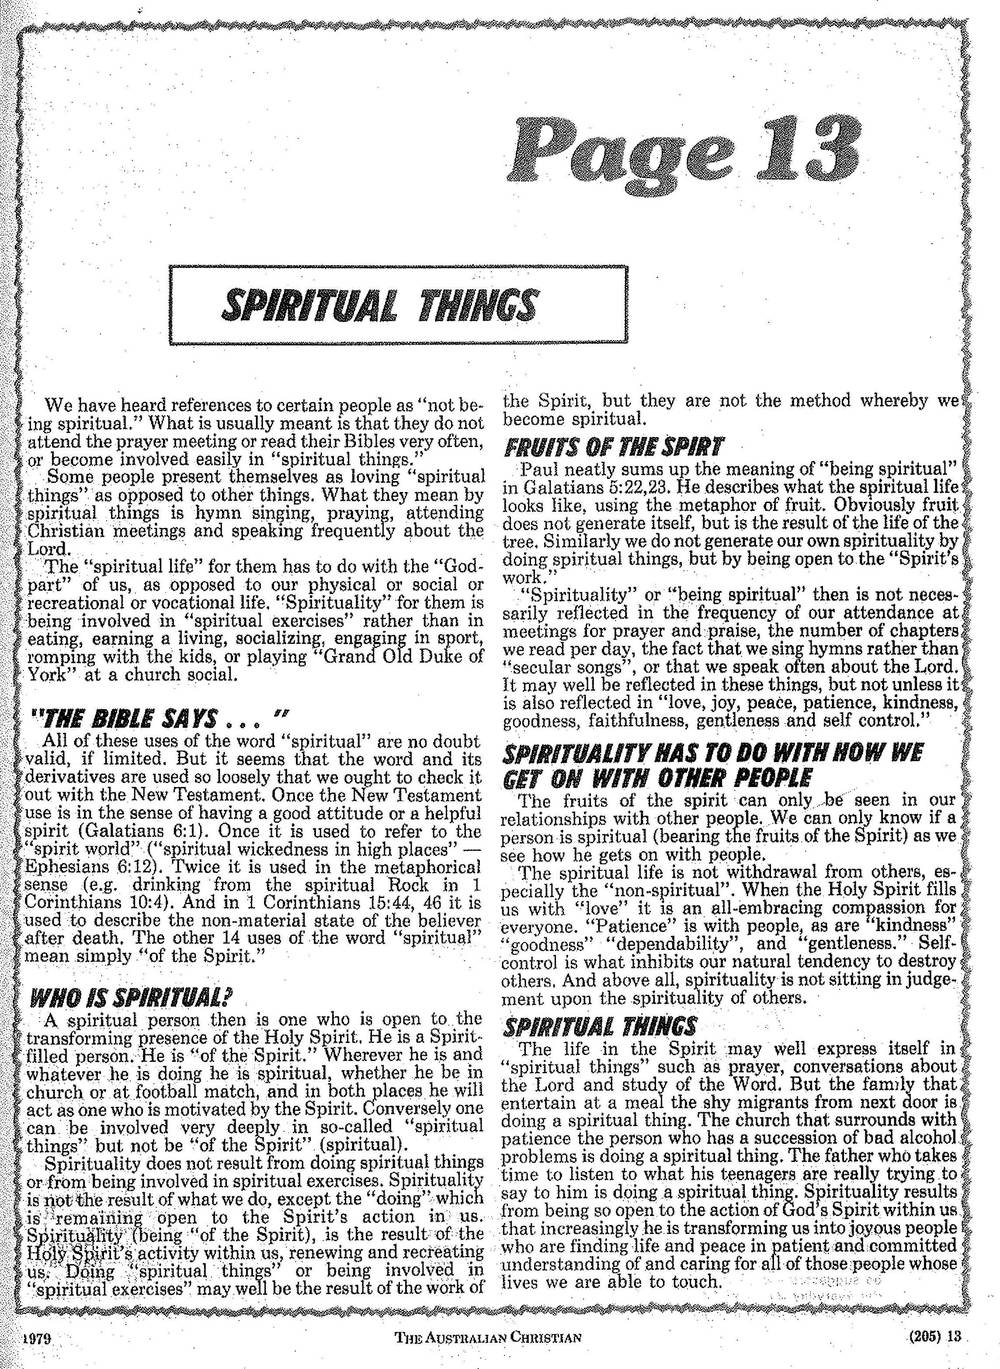 The first Page 13 from 1979